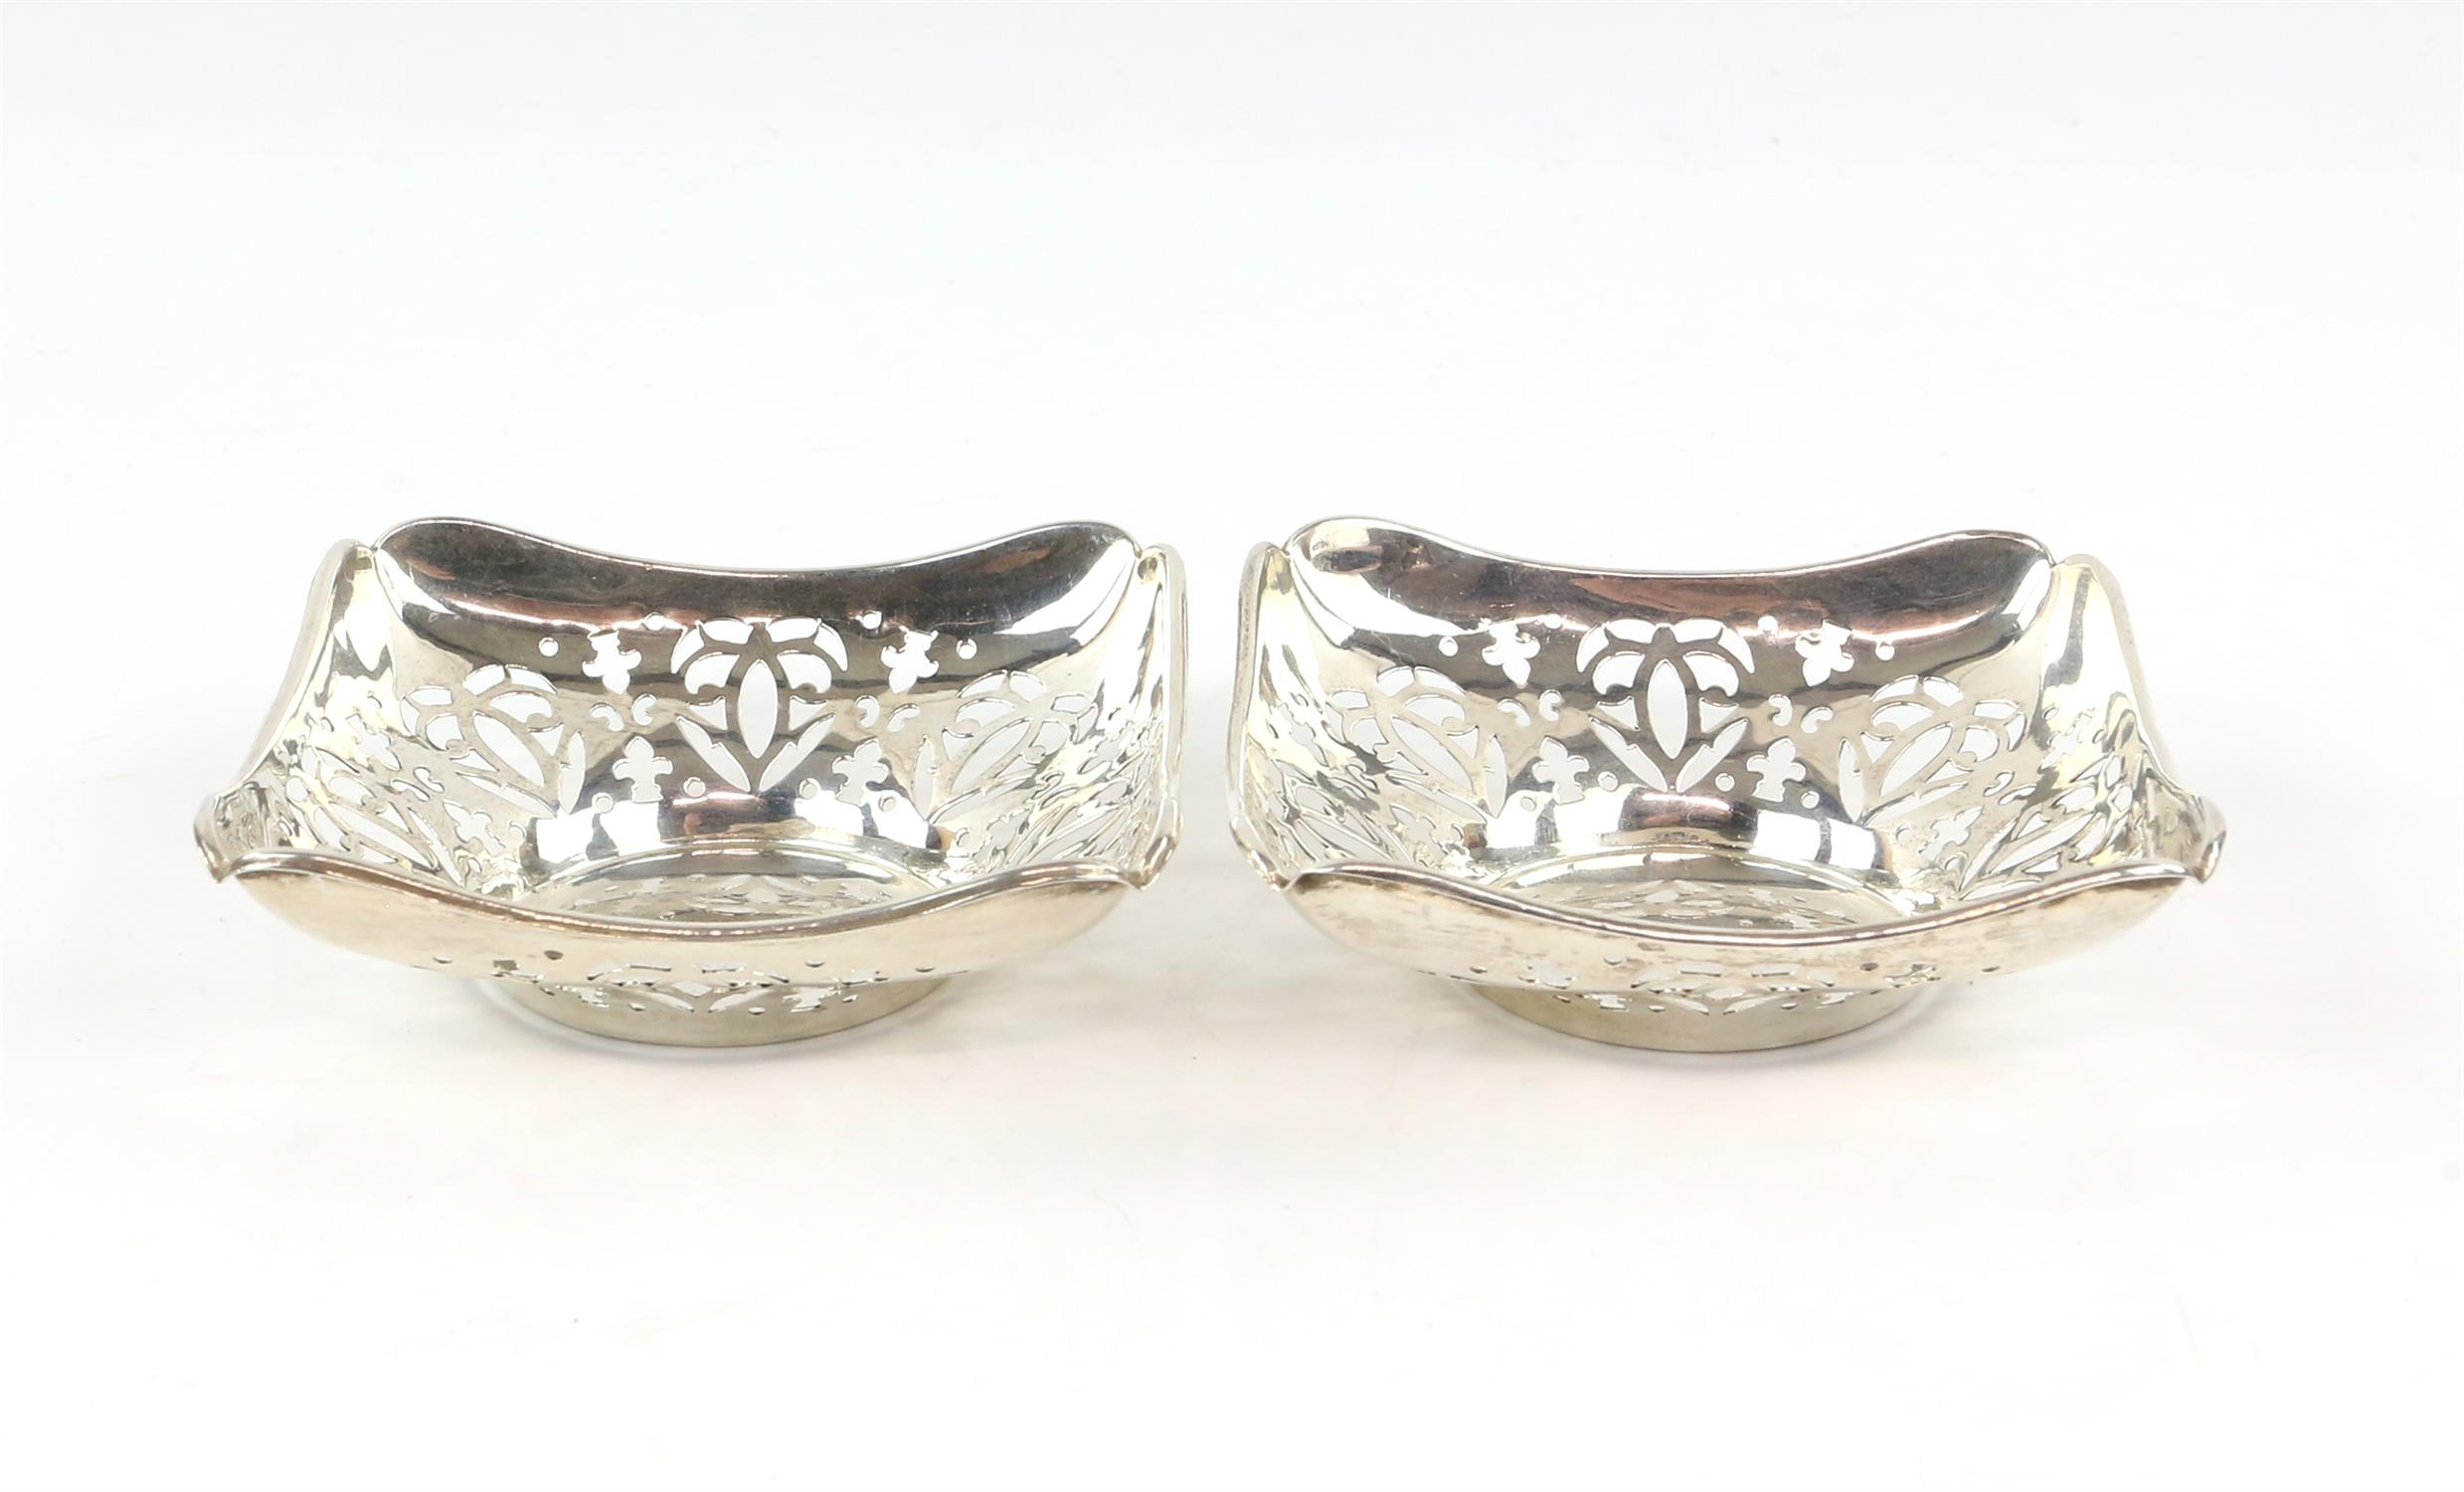 Pair of pierced square form silver Bon Bon dishes by Deaken and Francis, Birmingham 1910 - Image 2 of 4